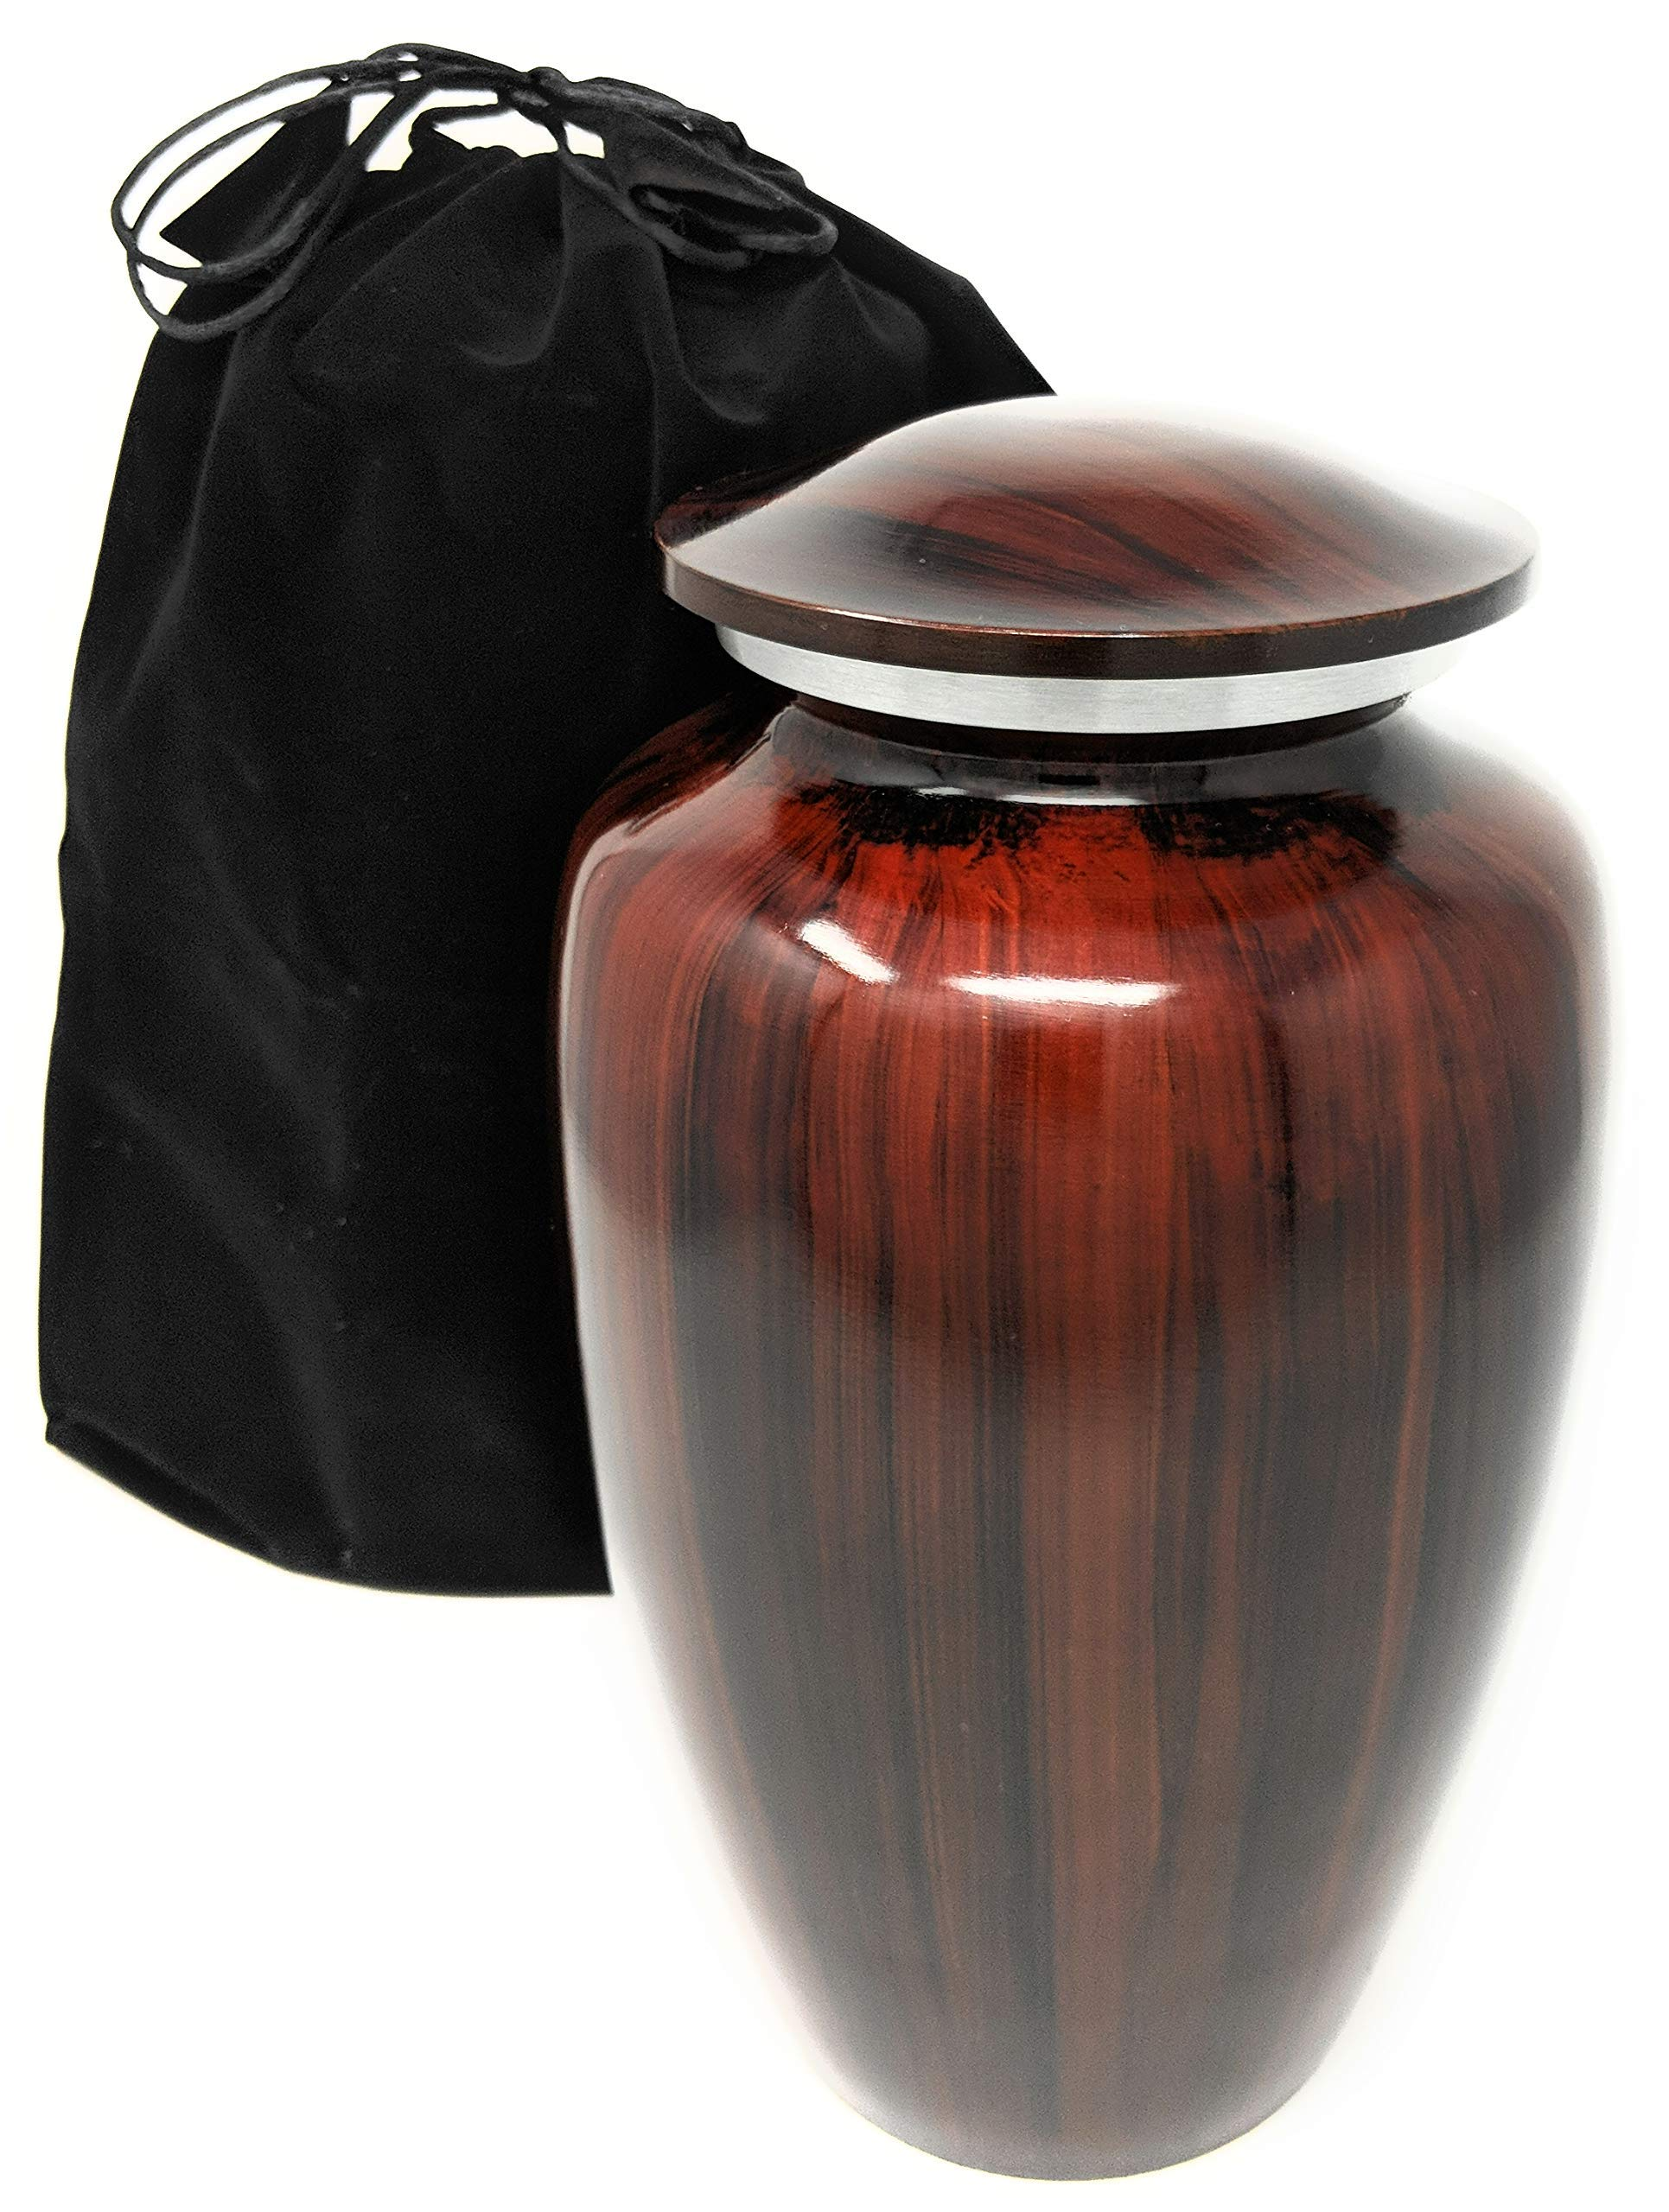 Cremation Urn with Lid for Adult Human Ashes | Brown Woodgrain Vase to Hold Your Loved One | Beautiful Classic Keepsake | Includes Free Accessories